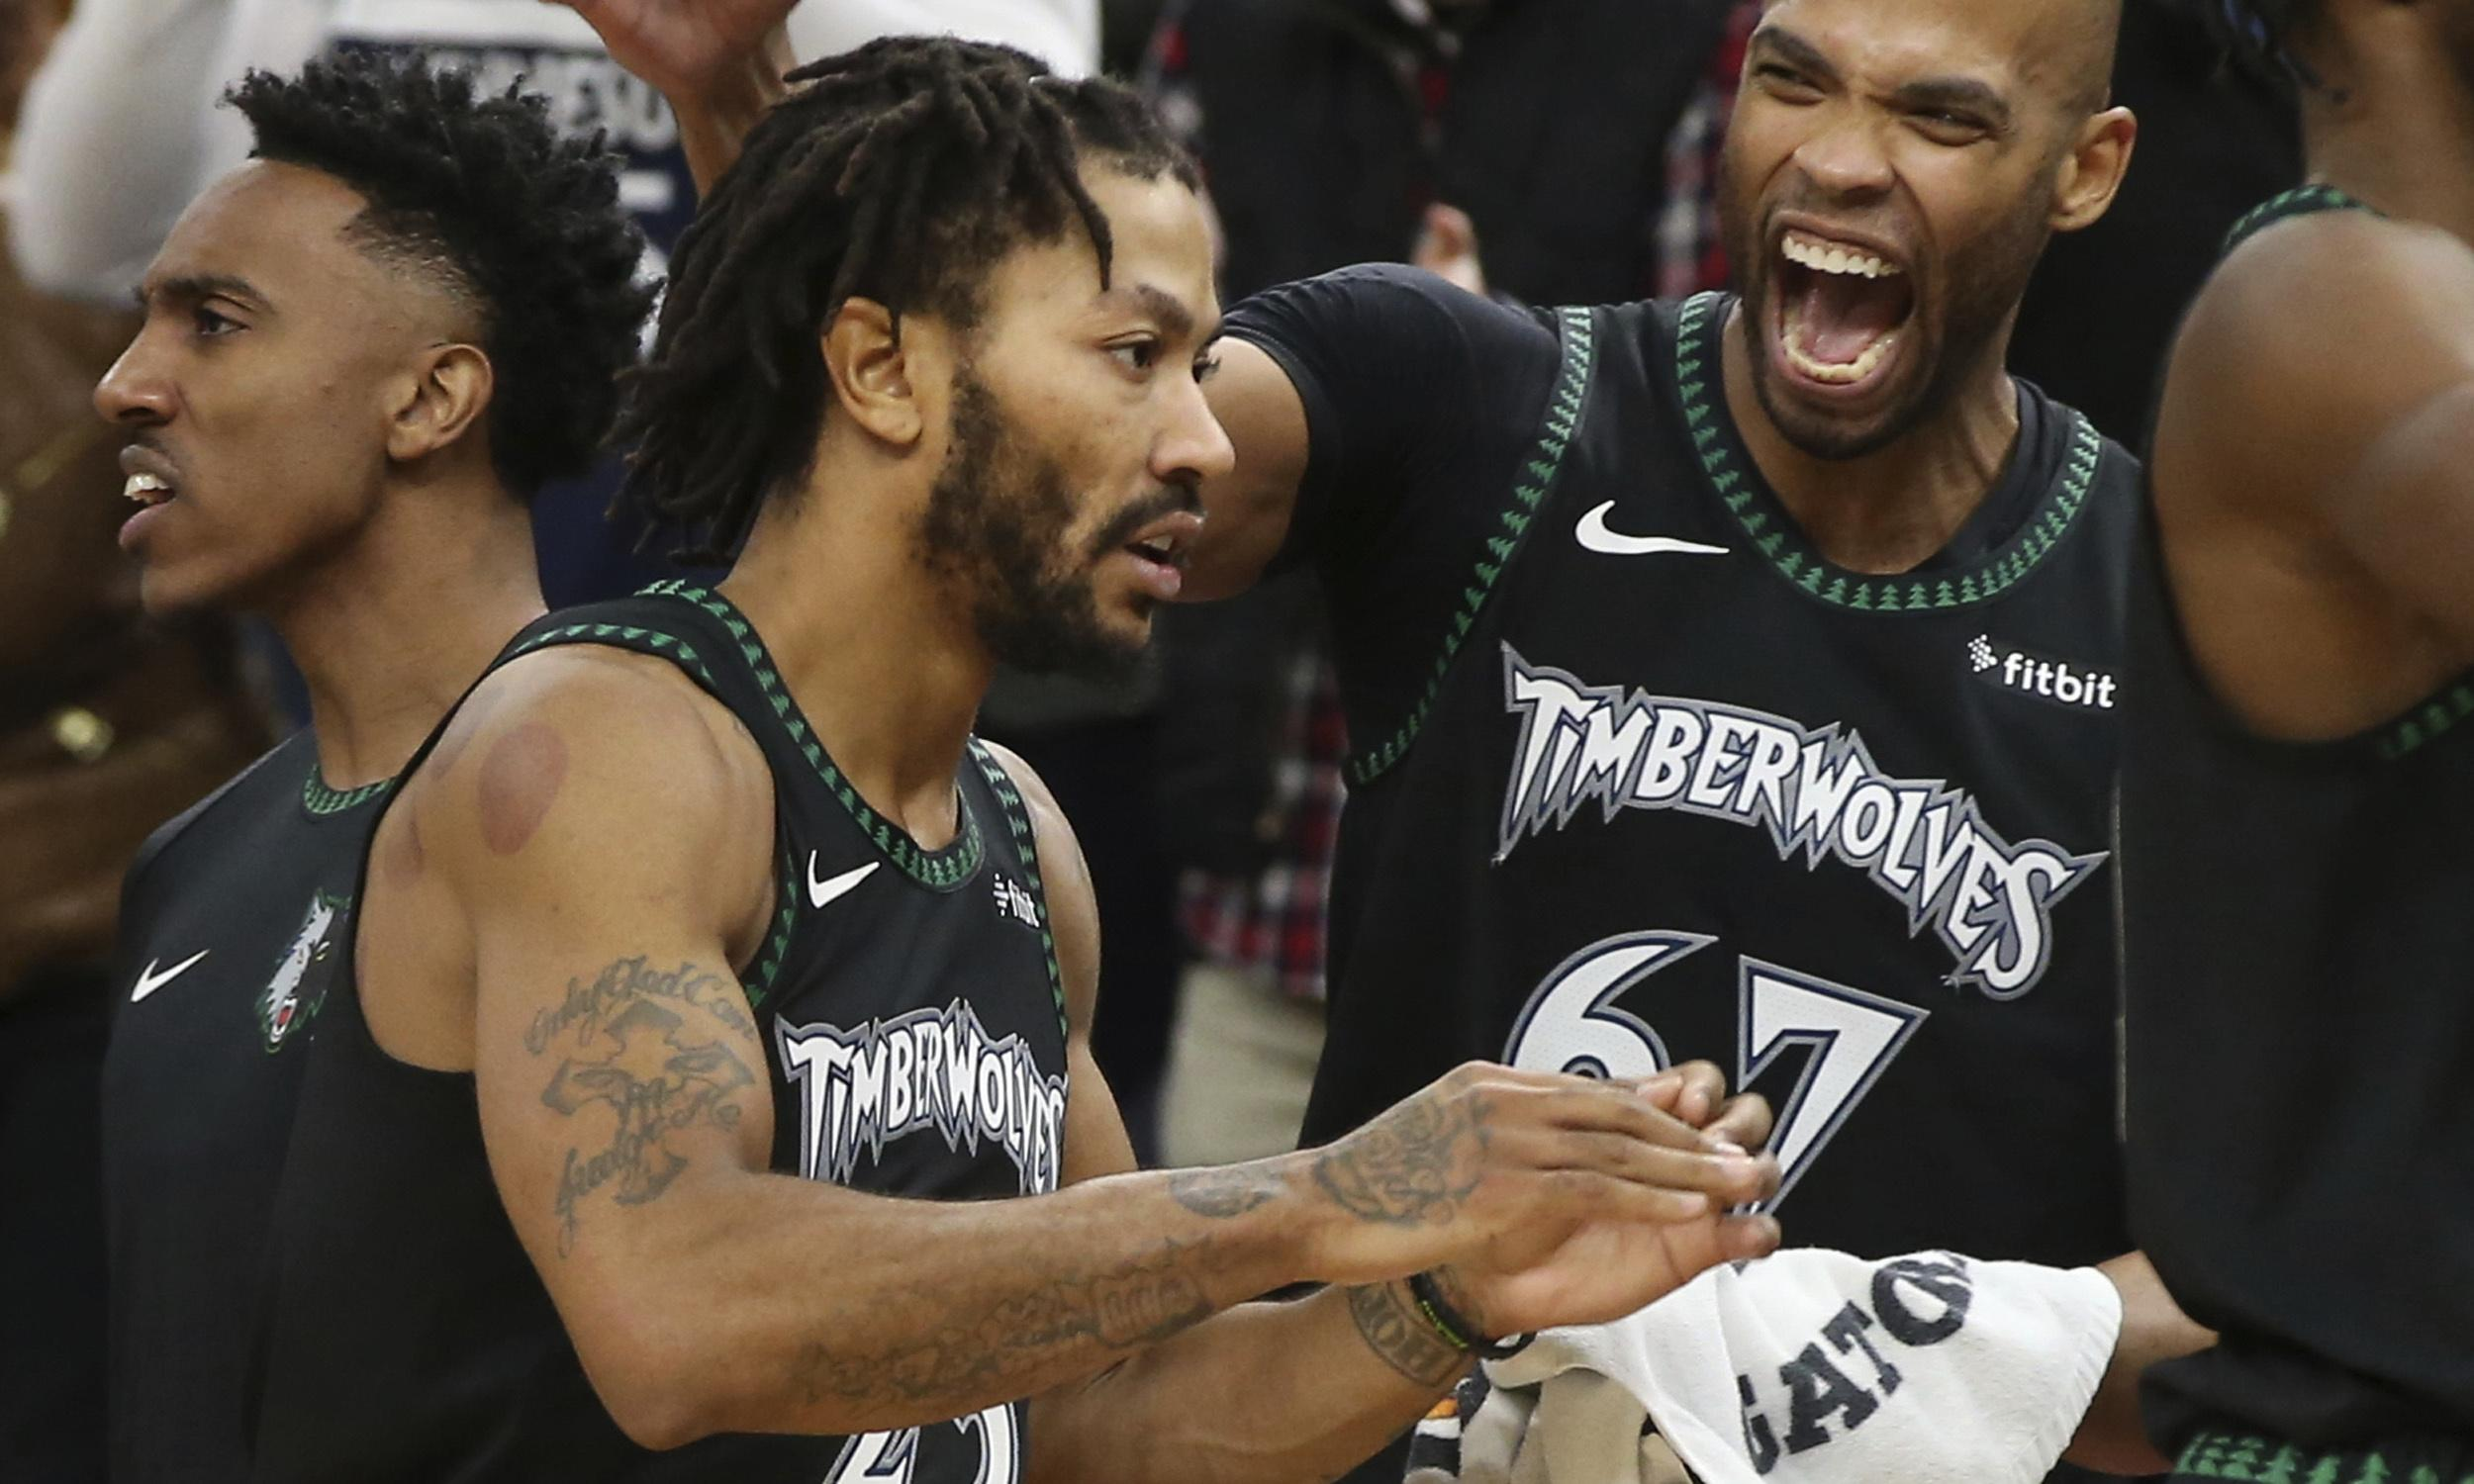 Derrick Rose left in tears after career-high 50 points in Timberwolves win